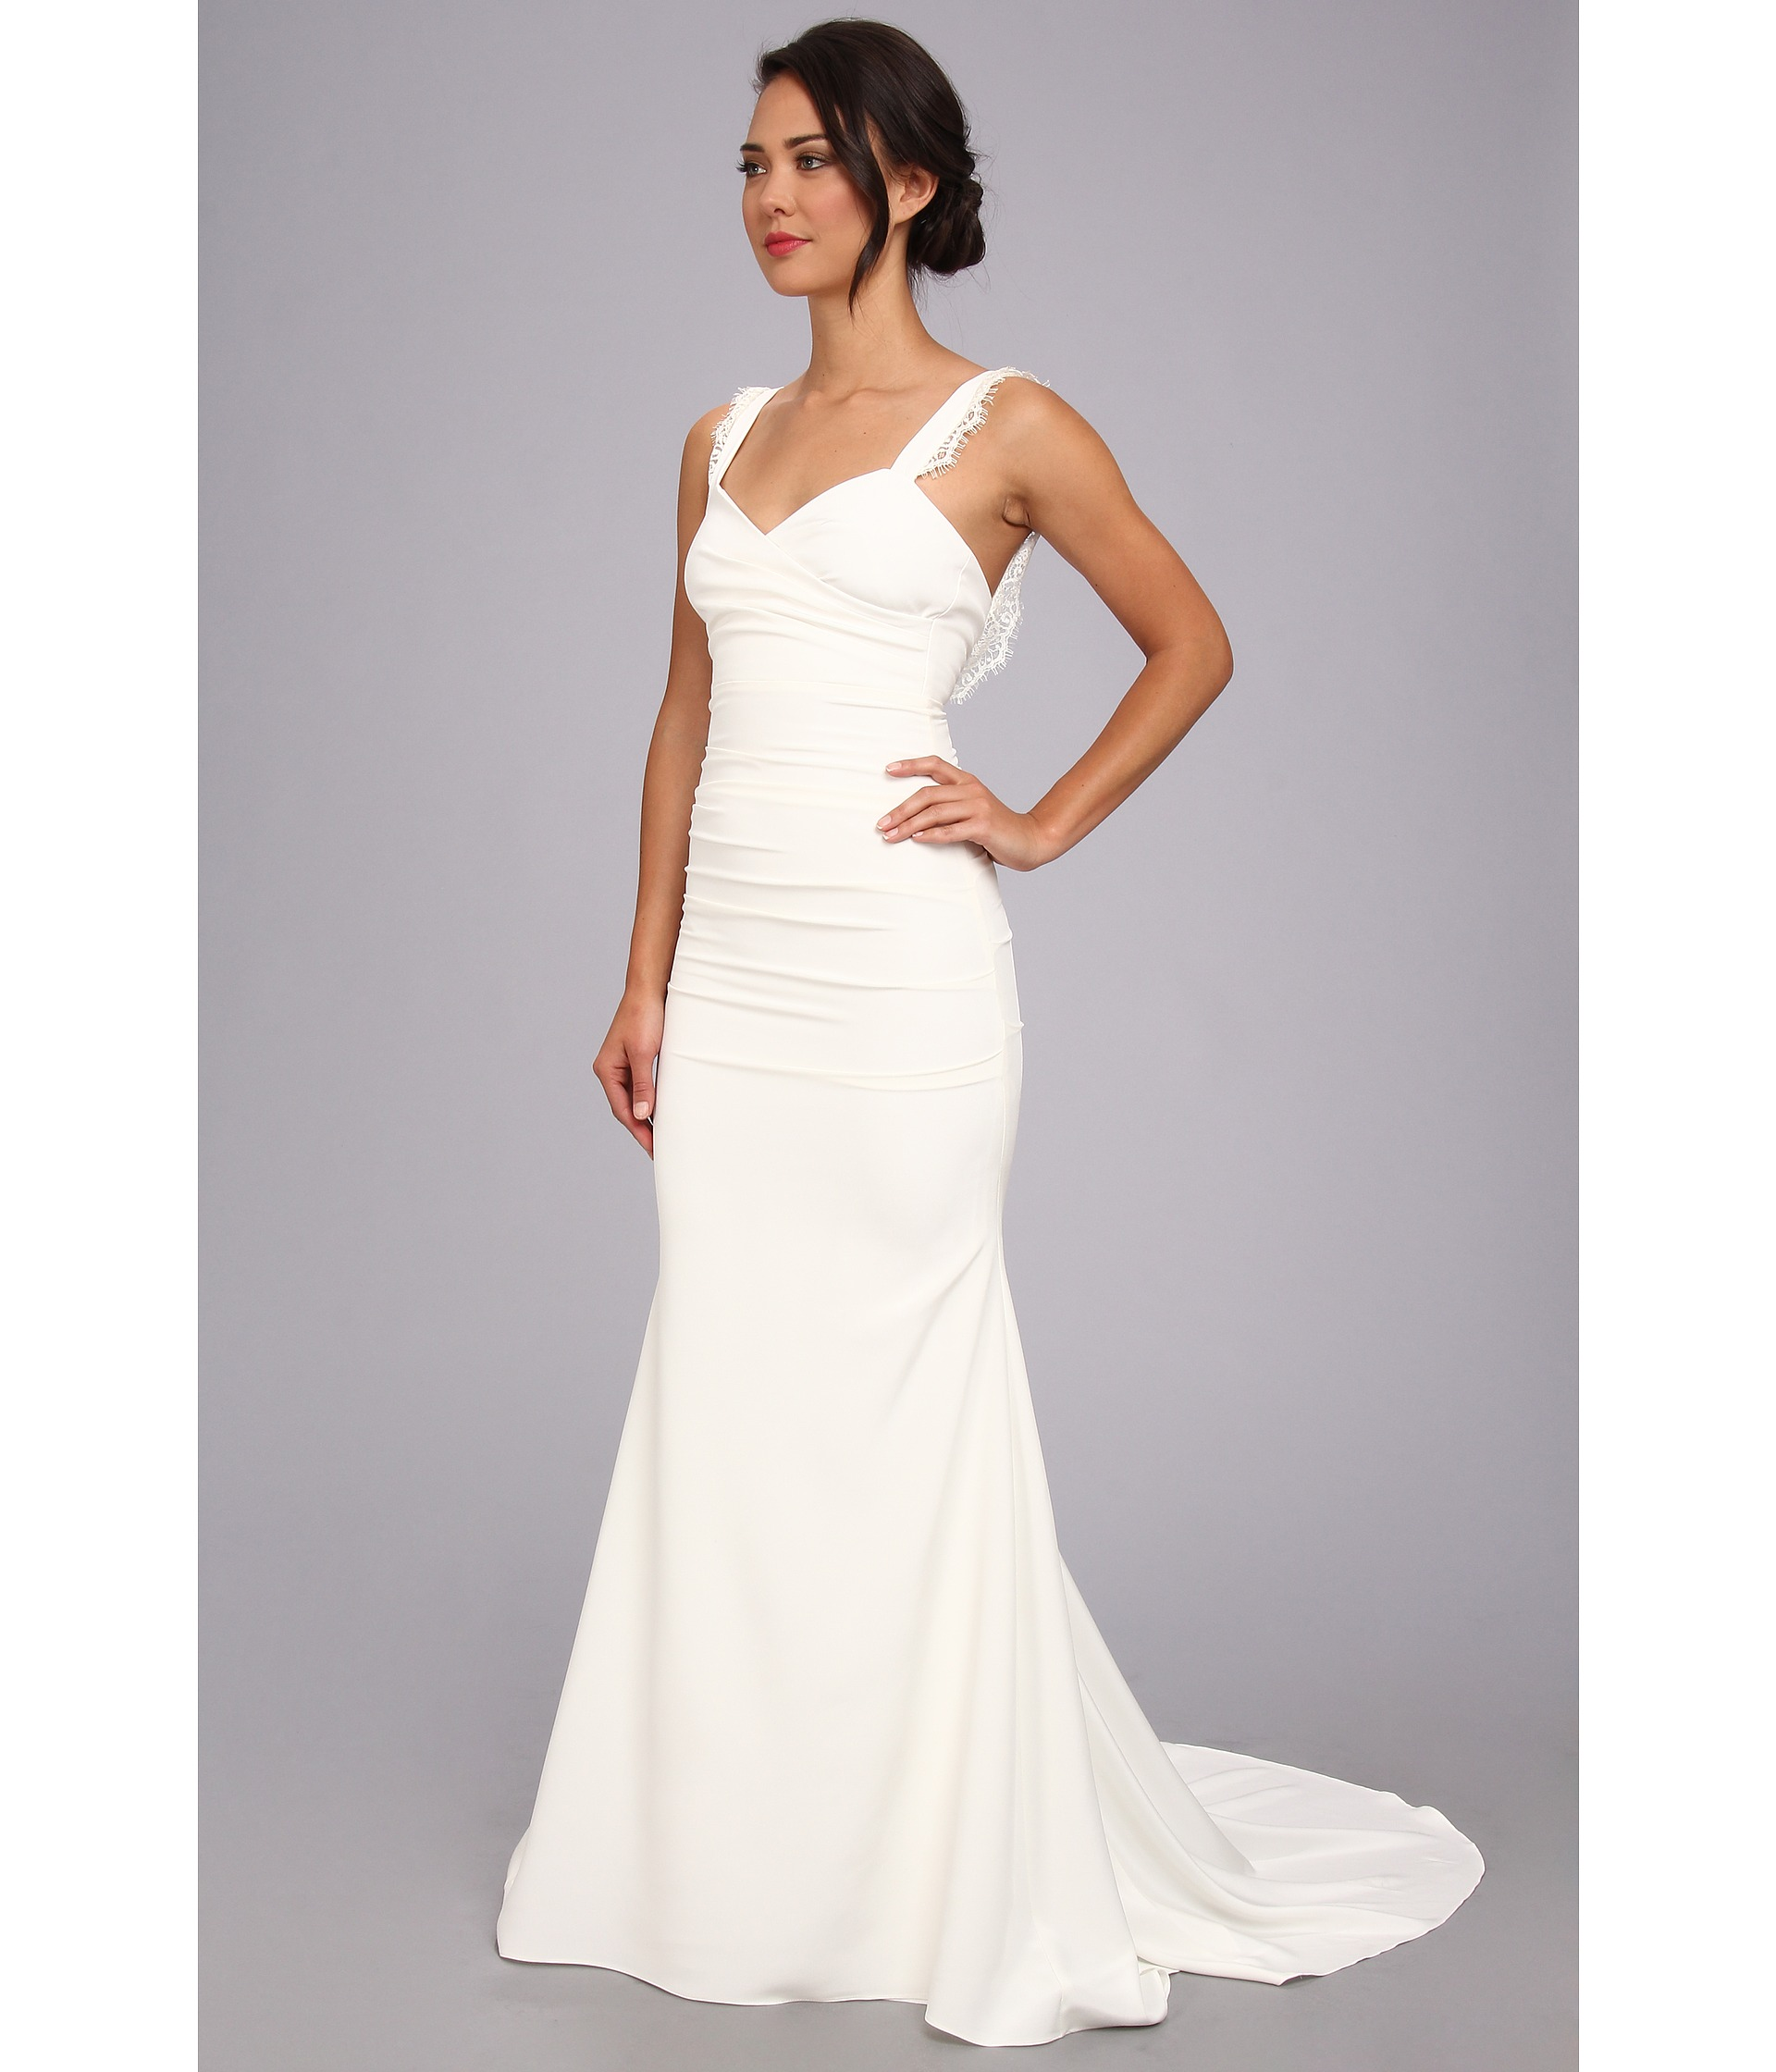 nicole miller wedding dresses Nicole Miller Alexis Low Back Bridal Gown